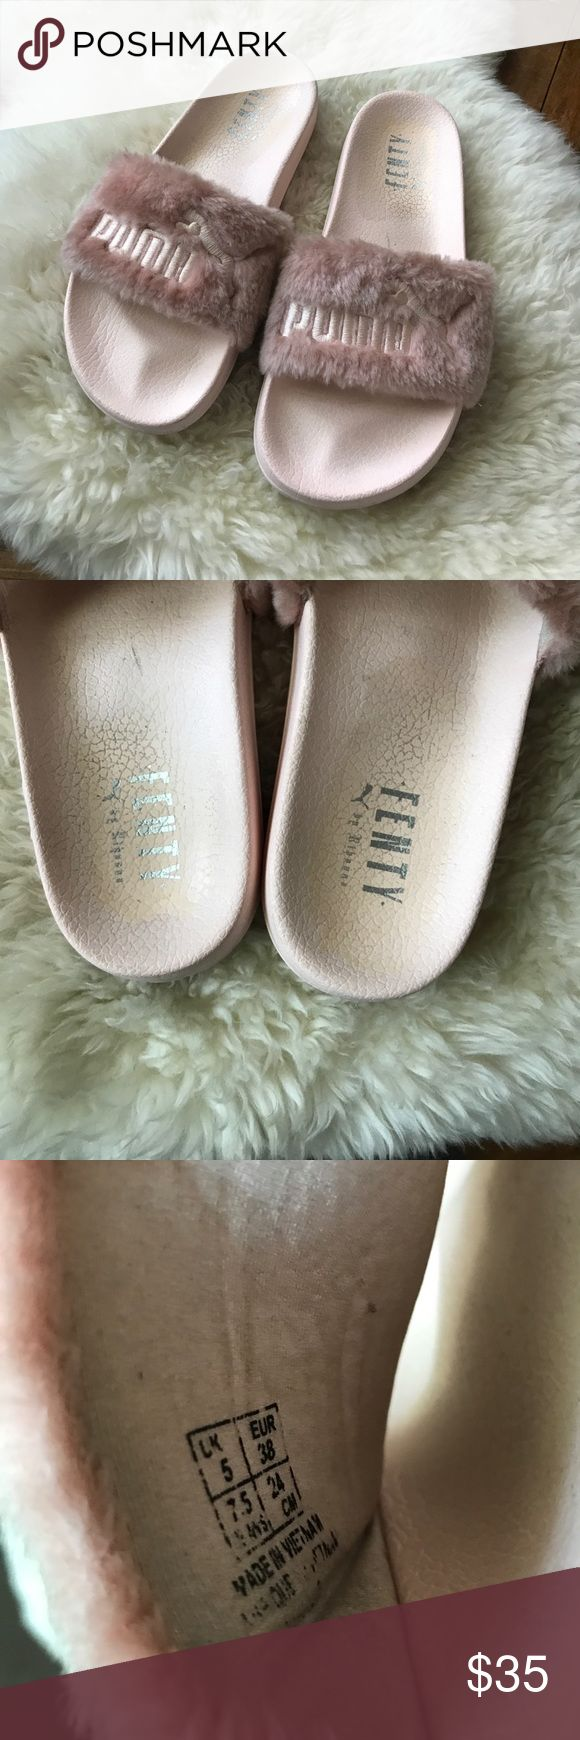 PINK PUMA RIHANNA PINK SLIDES Used. Open to offers. I do not have the box.💕💕💕 Rihanna Shoes